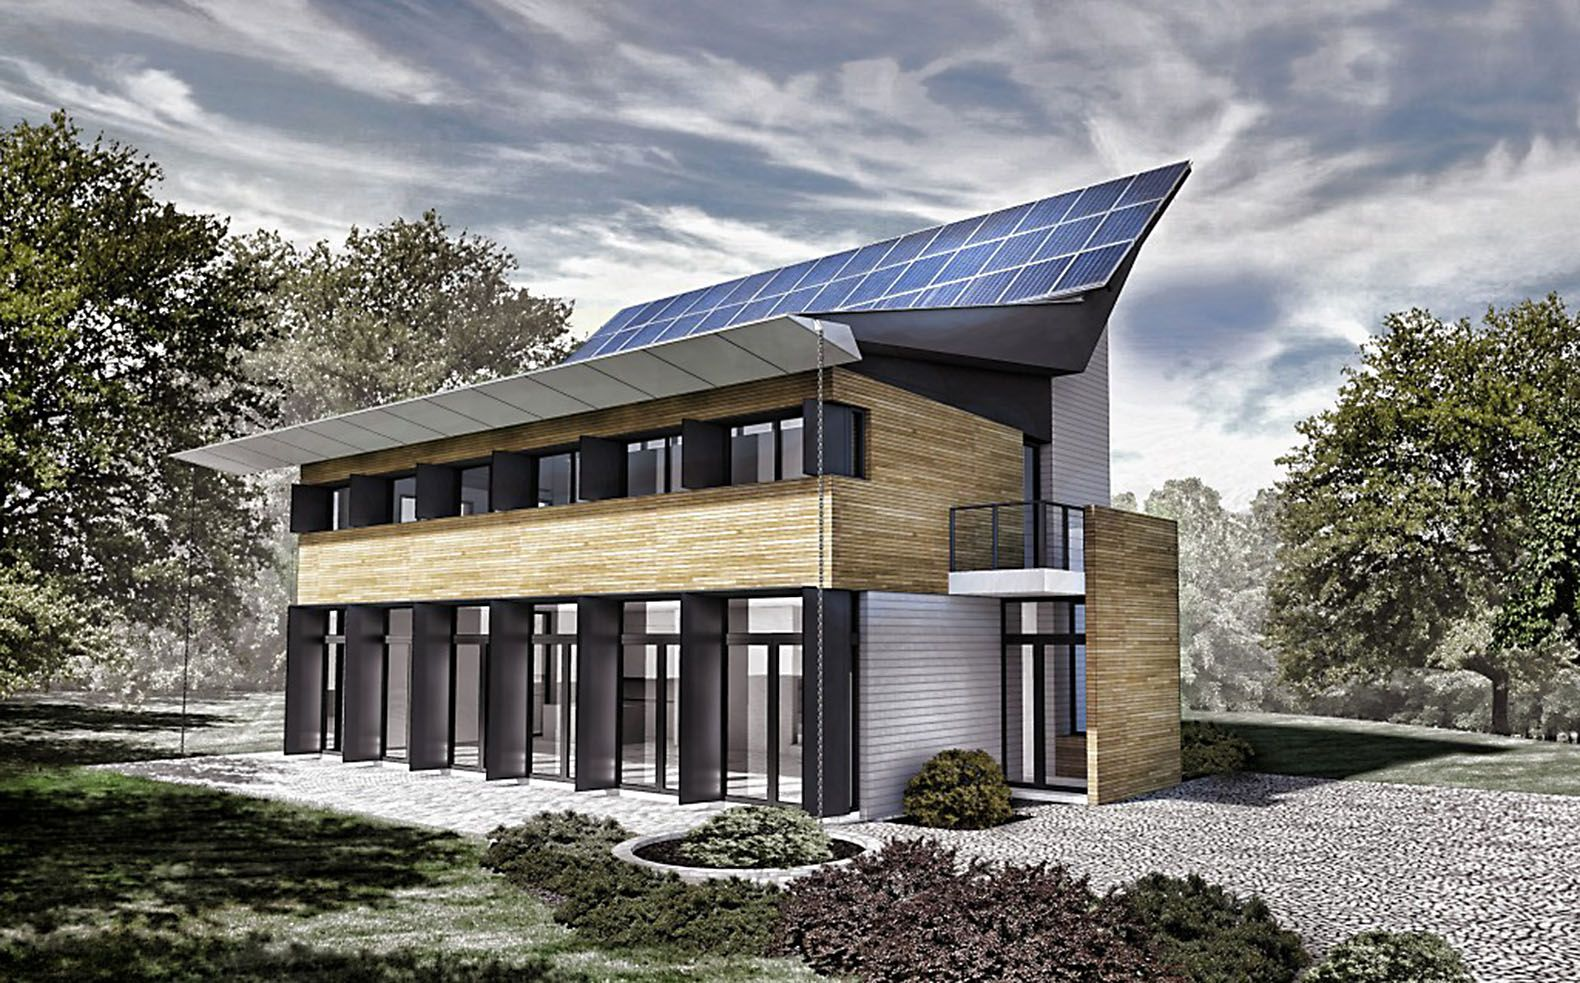 Ultra modern pv house boasts scissored solar panels for a for Super modern house